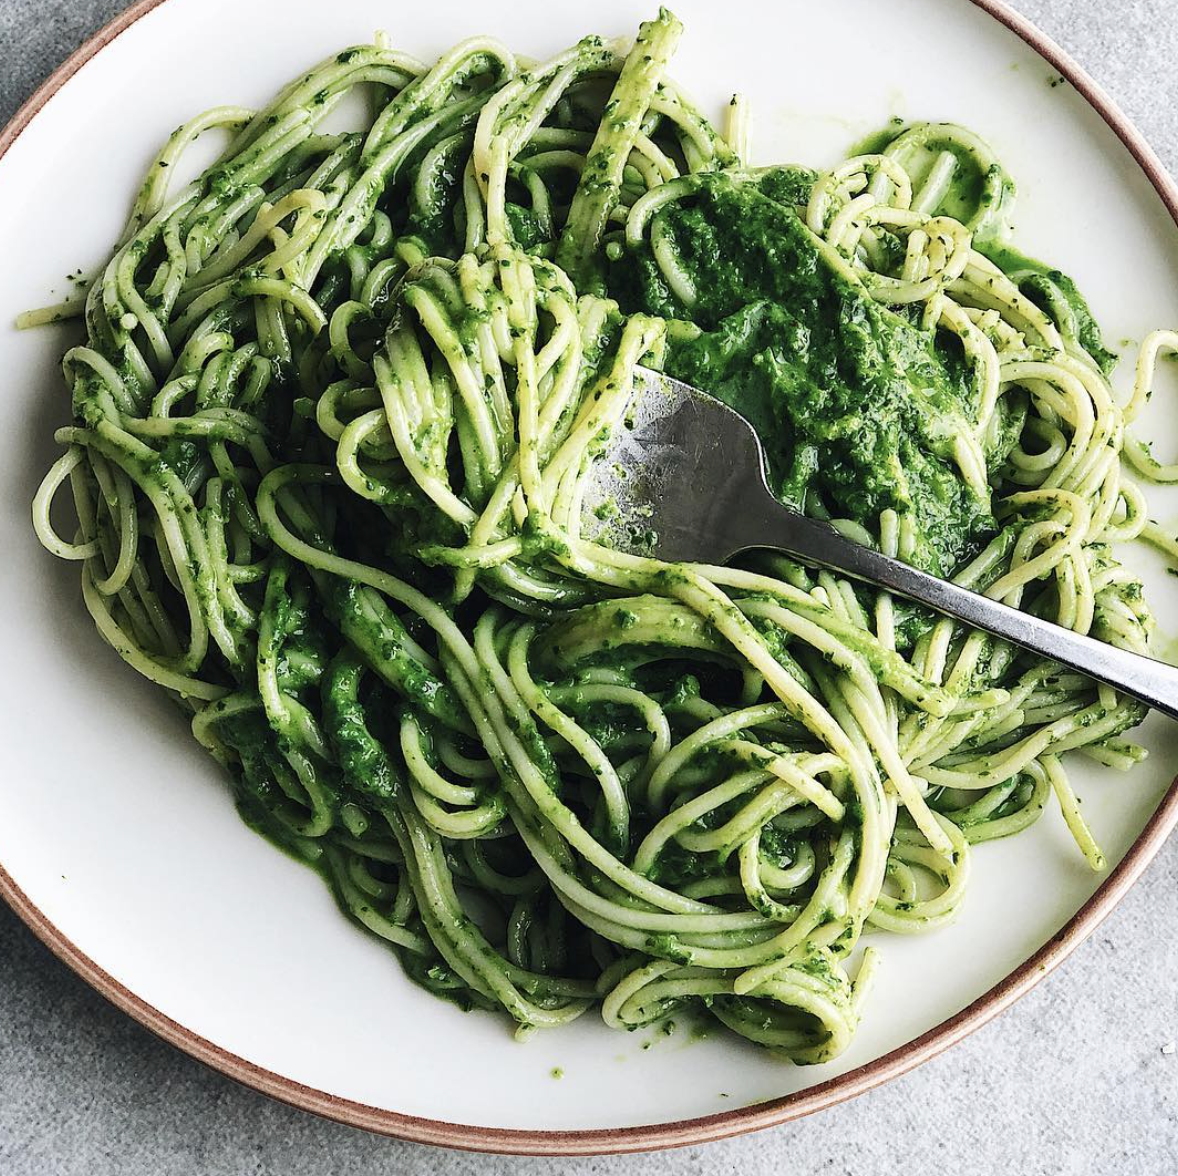 Herbed Pasta with Parsley, Spinach and Basil